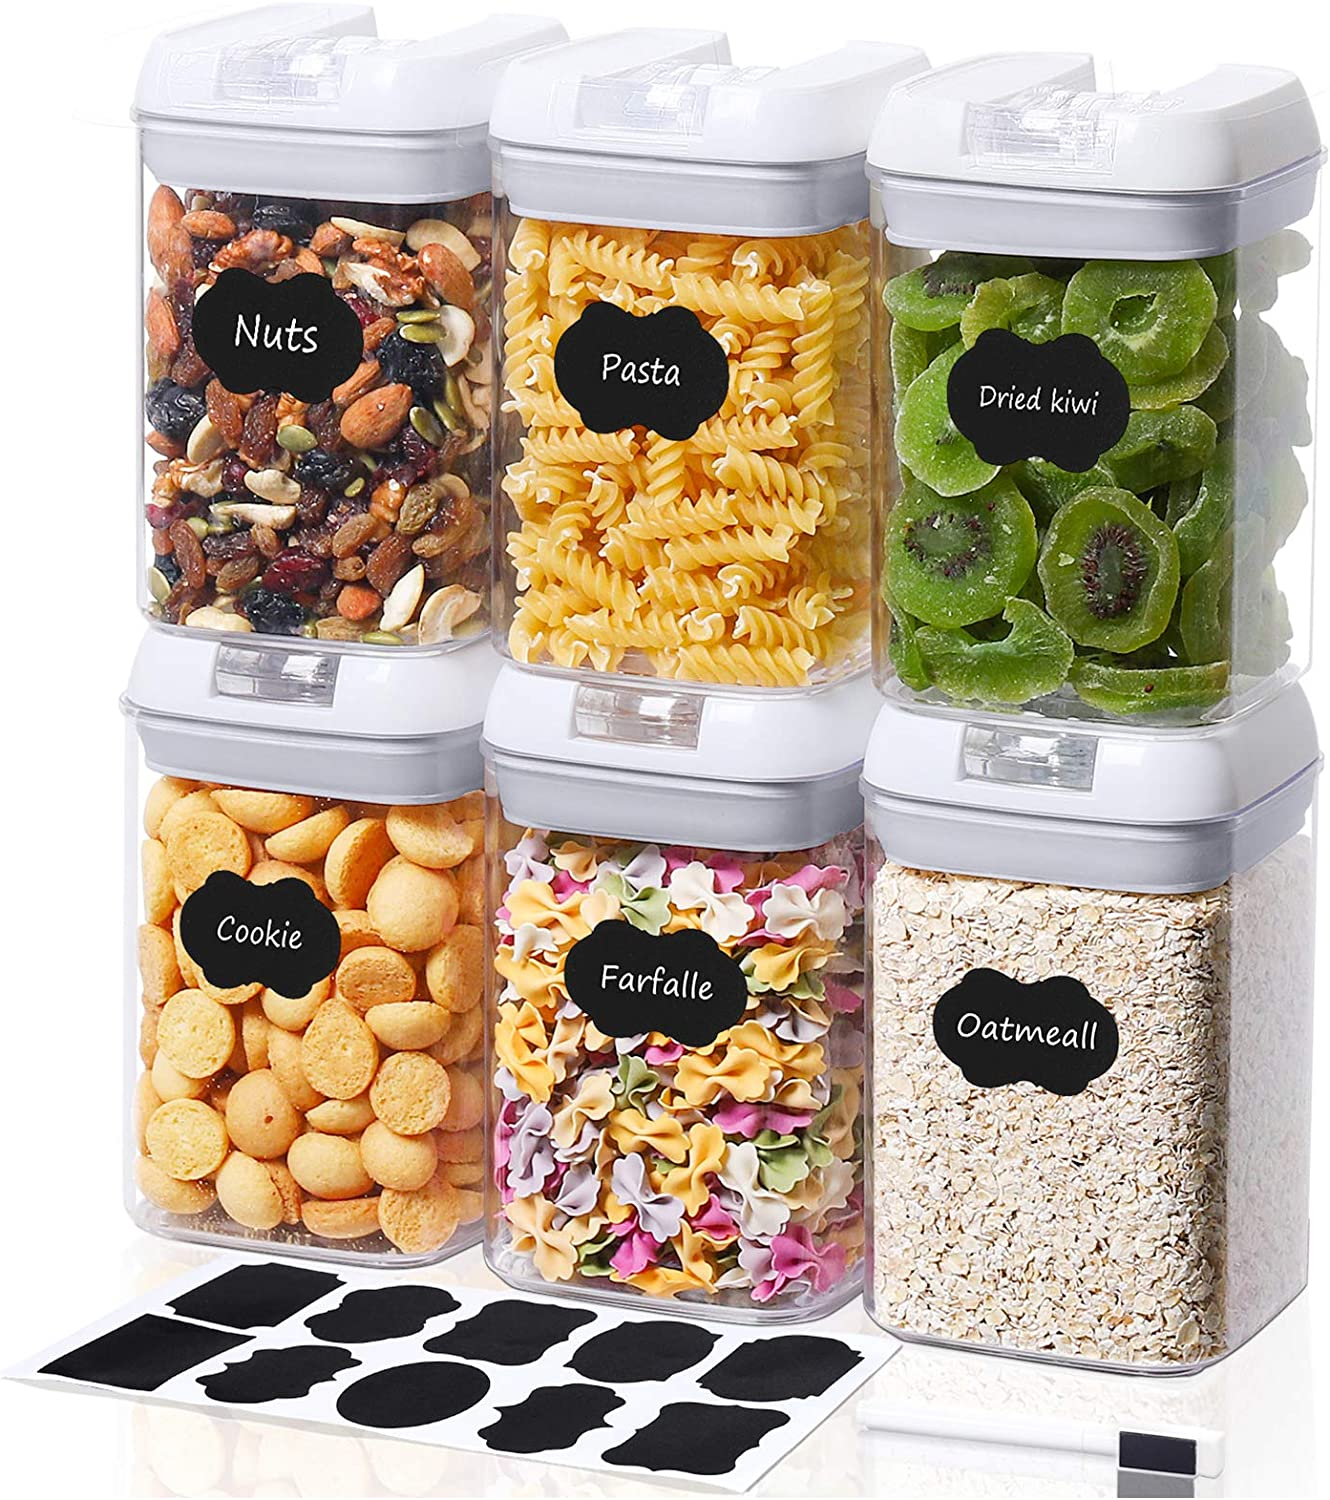 TIANGR 27OZ(800ML)Airtight Food Storage Containers[6PCS]Small Cereal Containers With Lids - BPA Free -10 Labels - Easy Lock Design - For Kitchen Pantry Snacks Food Storage